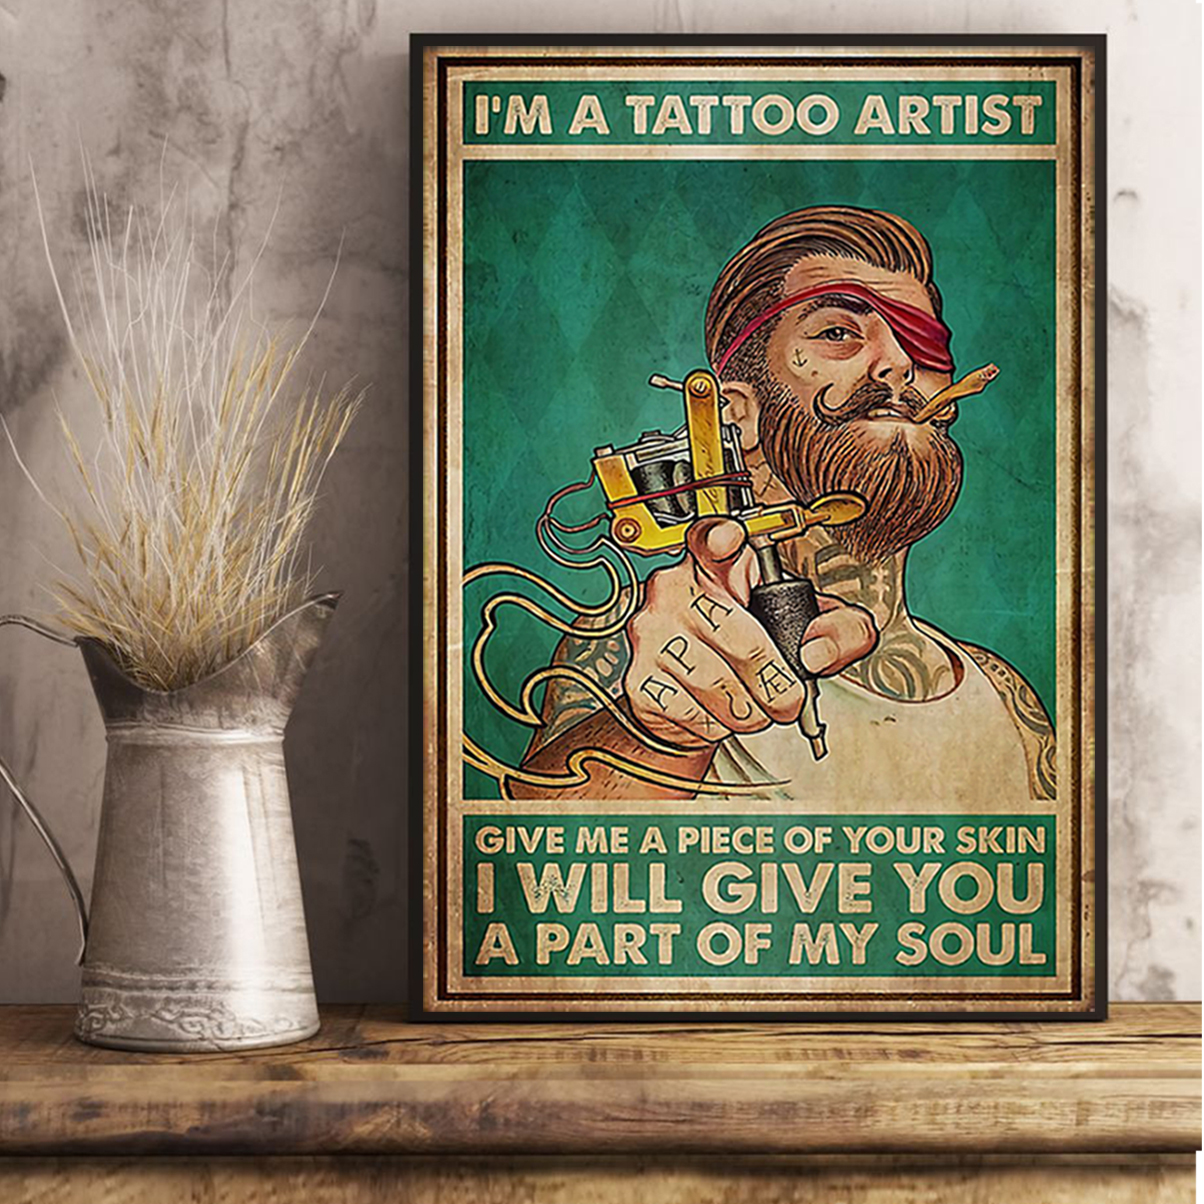 I'm a tattoo artist give me a peace of your skin I will give you a part of my soul poster A3